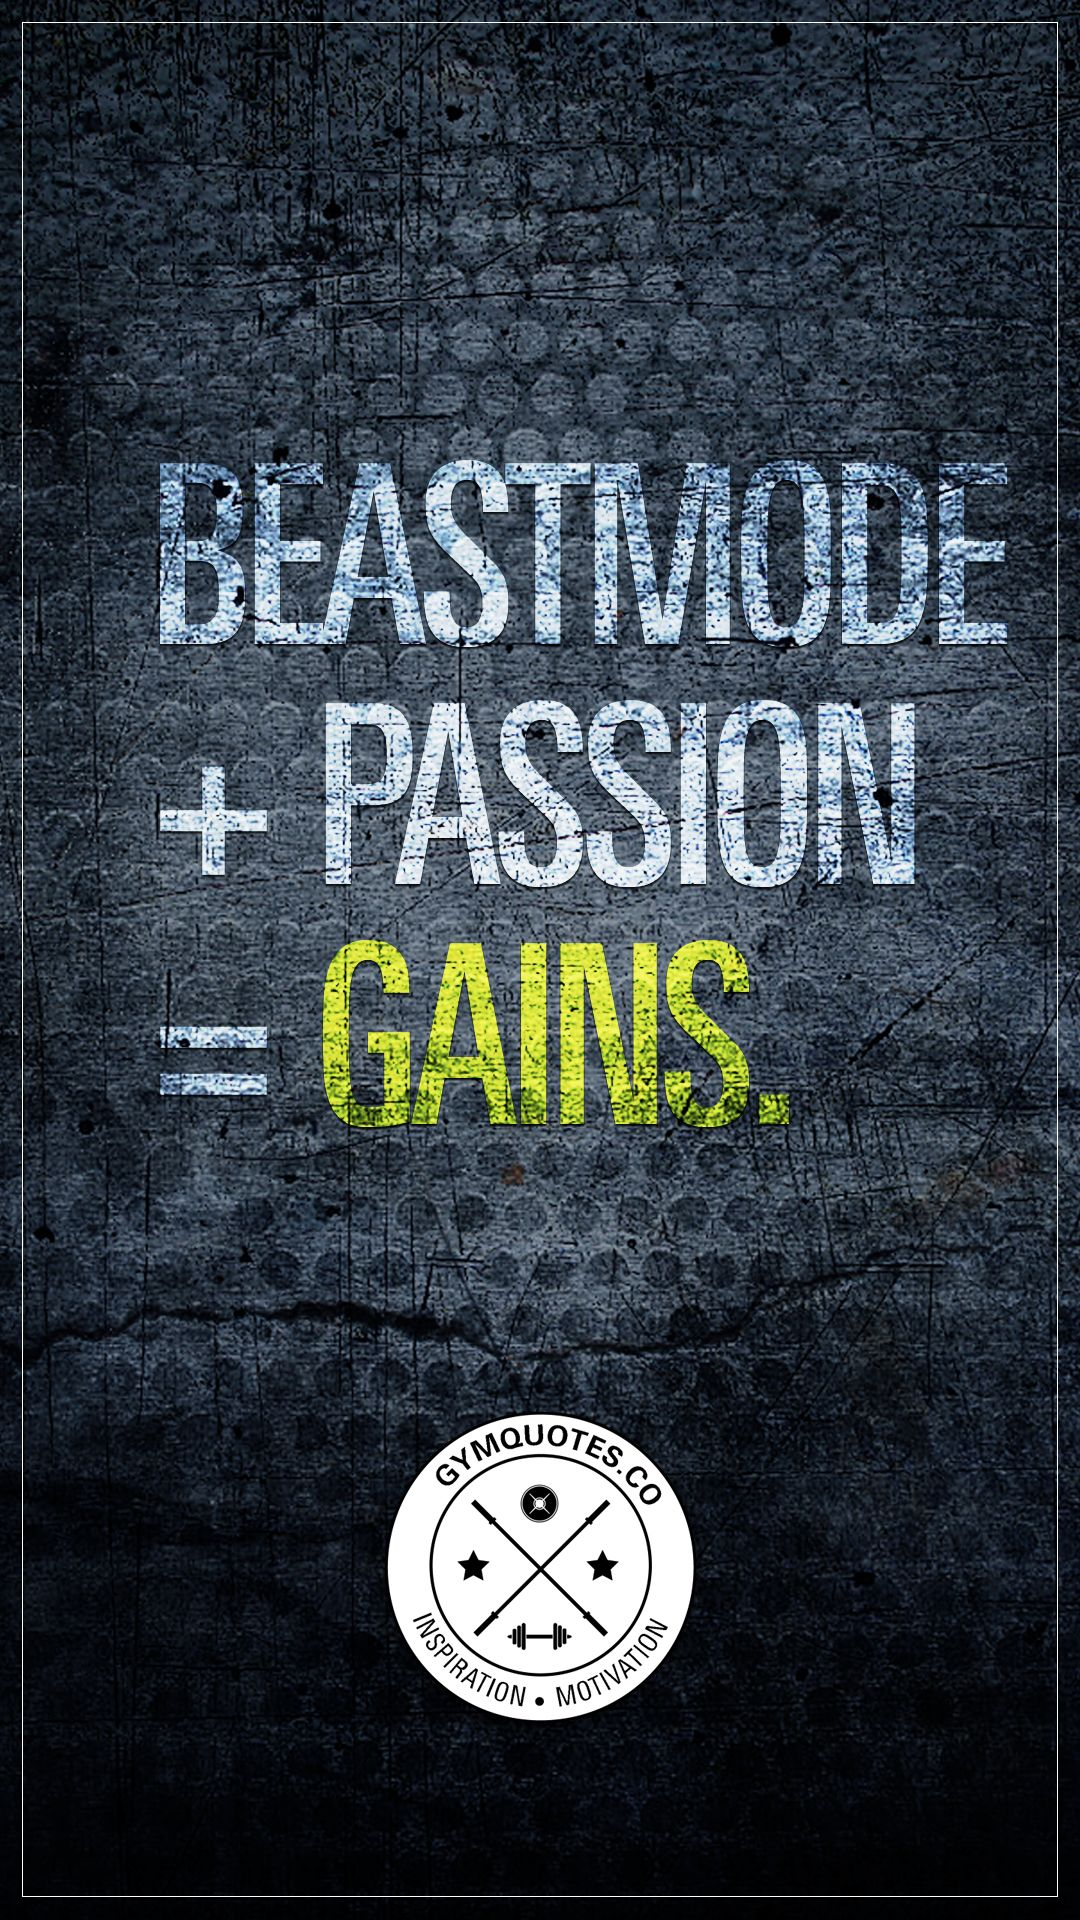 Beast mode + passion = gains.